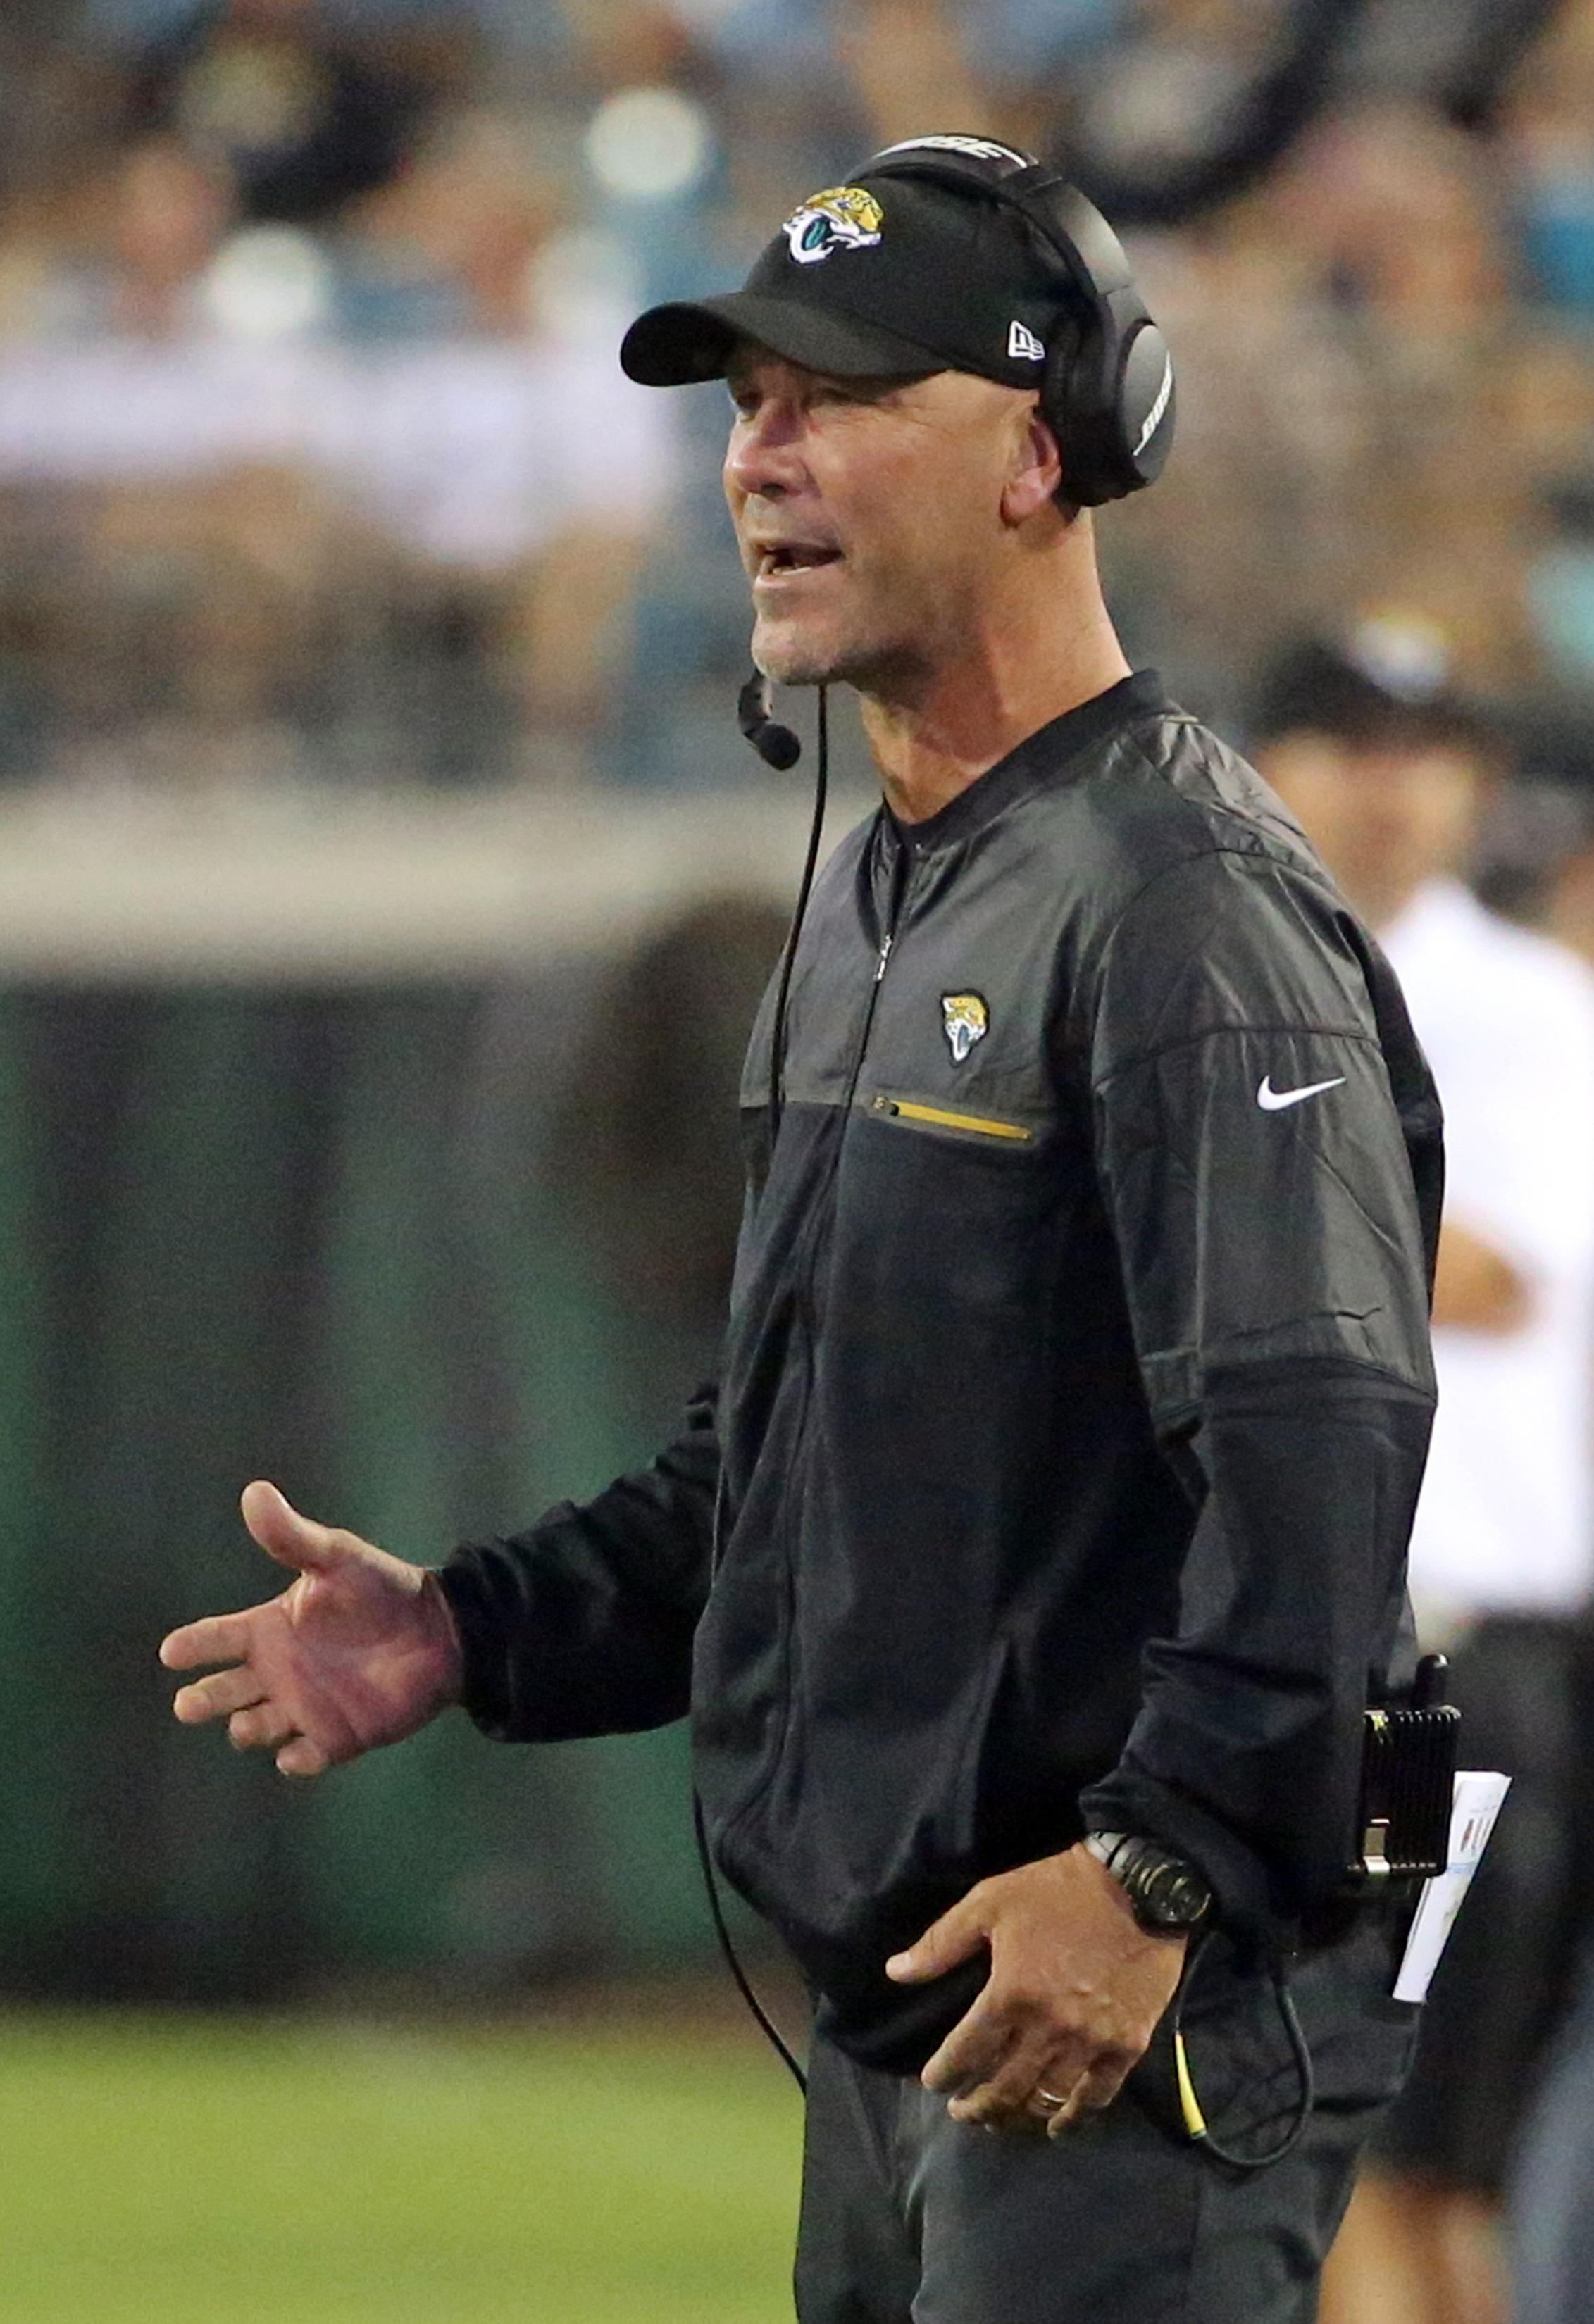 Jacksonville Jaguars head coach Gus Bradley voices an opinion during the first half of an NFL preseason football game against the Cincinnati Bengals in Jacksonville, Fla., Sunday, Aug. 28, 2016.(AP Photo/Stephen B. Morton)